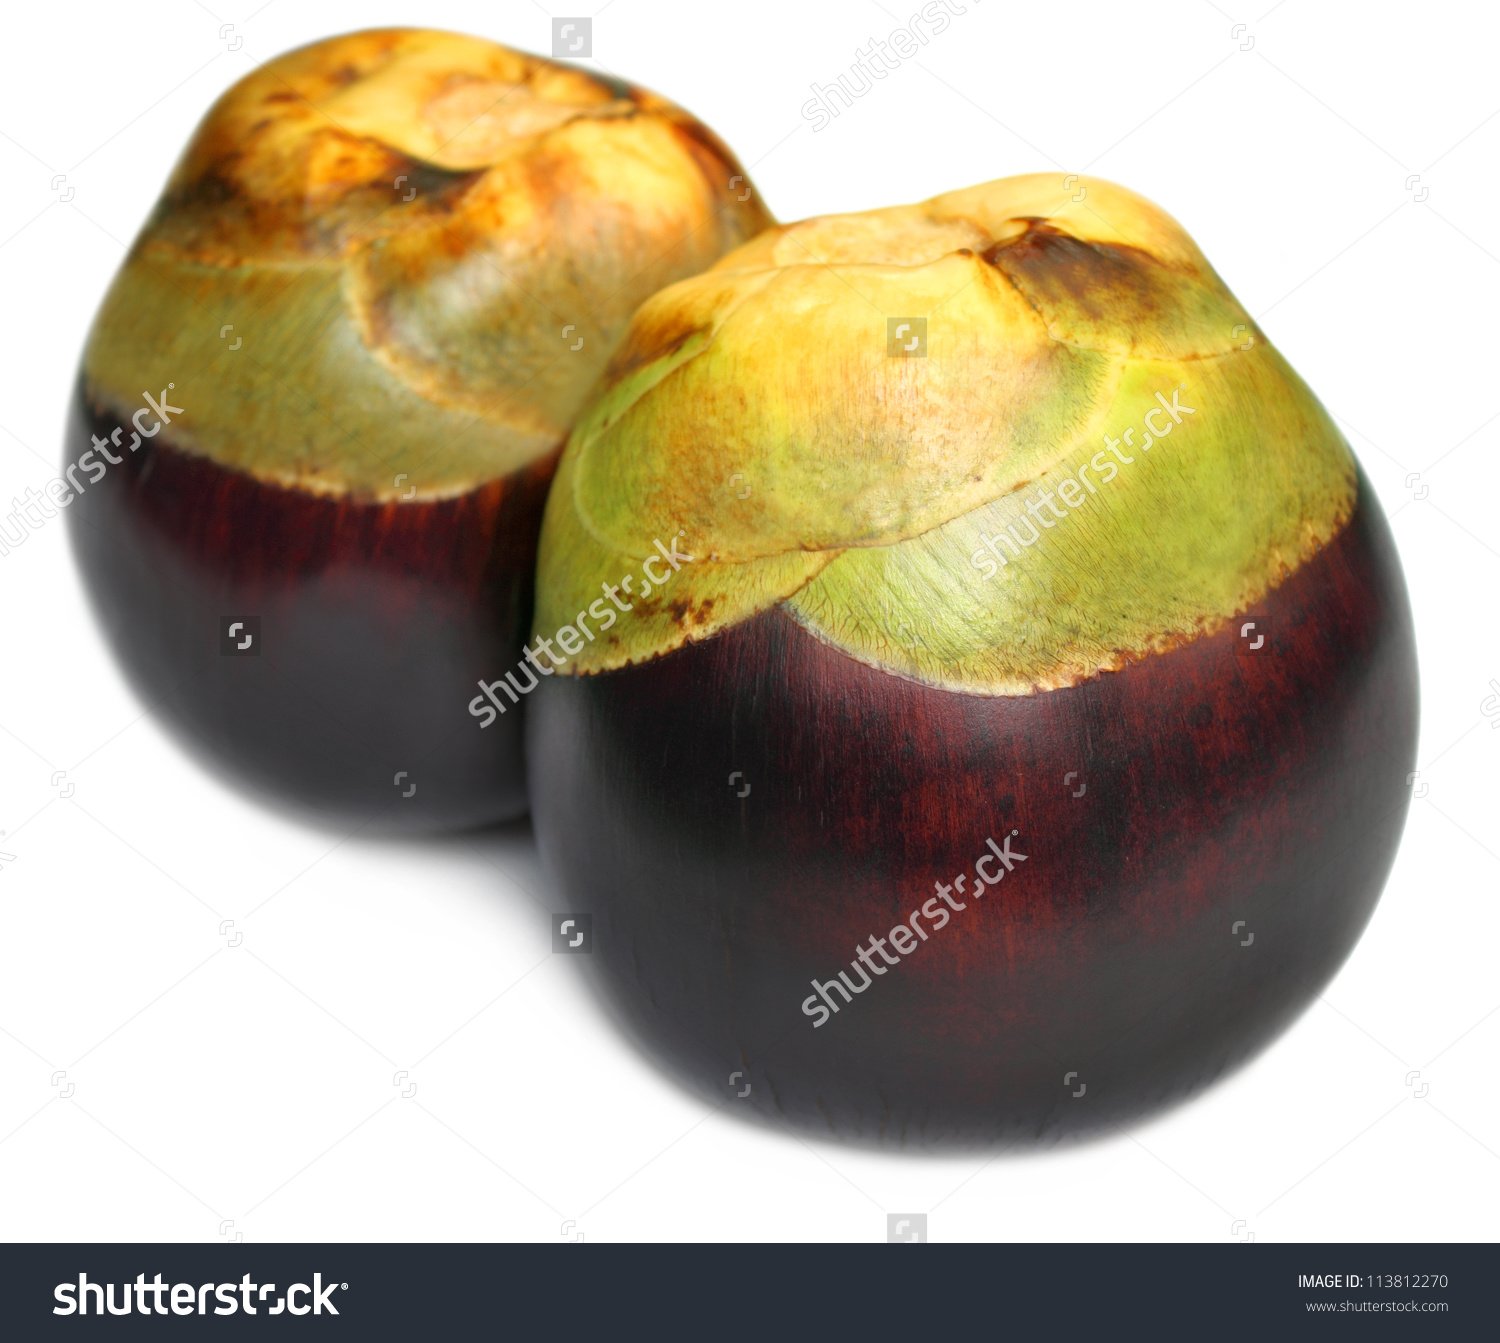 Borassus Flabellifer Tal Fruit Indian Subcontinent Stock Photo.